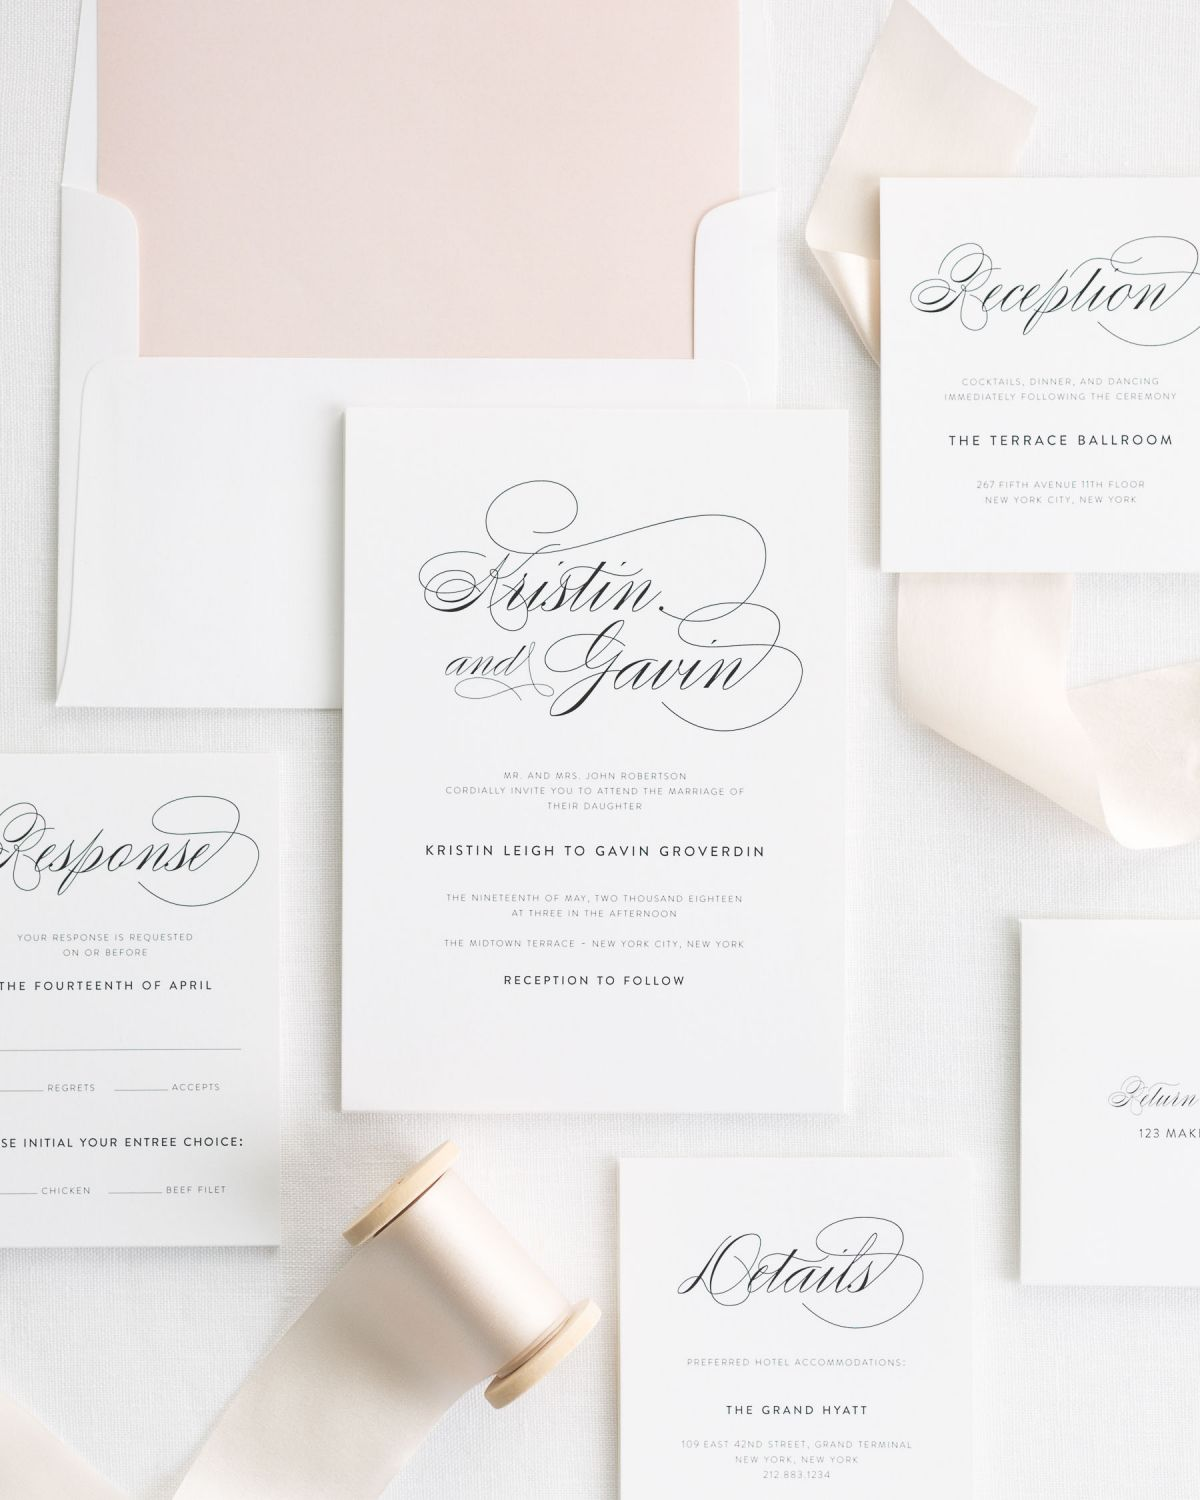 Classic Wedding Invitations with Pale Pink Silk Ribbon and Large Script Names